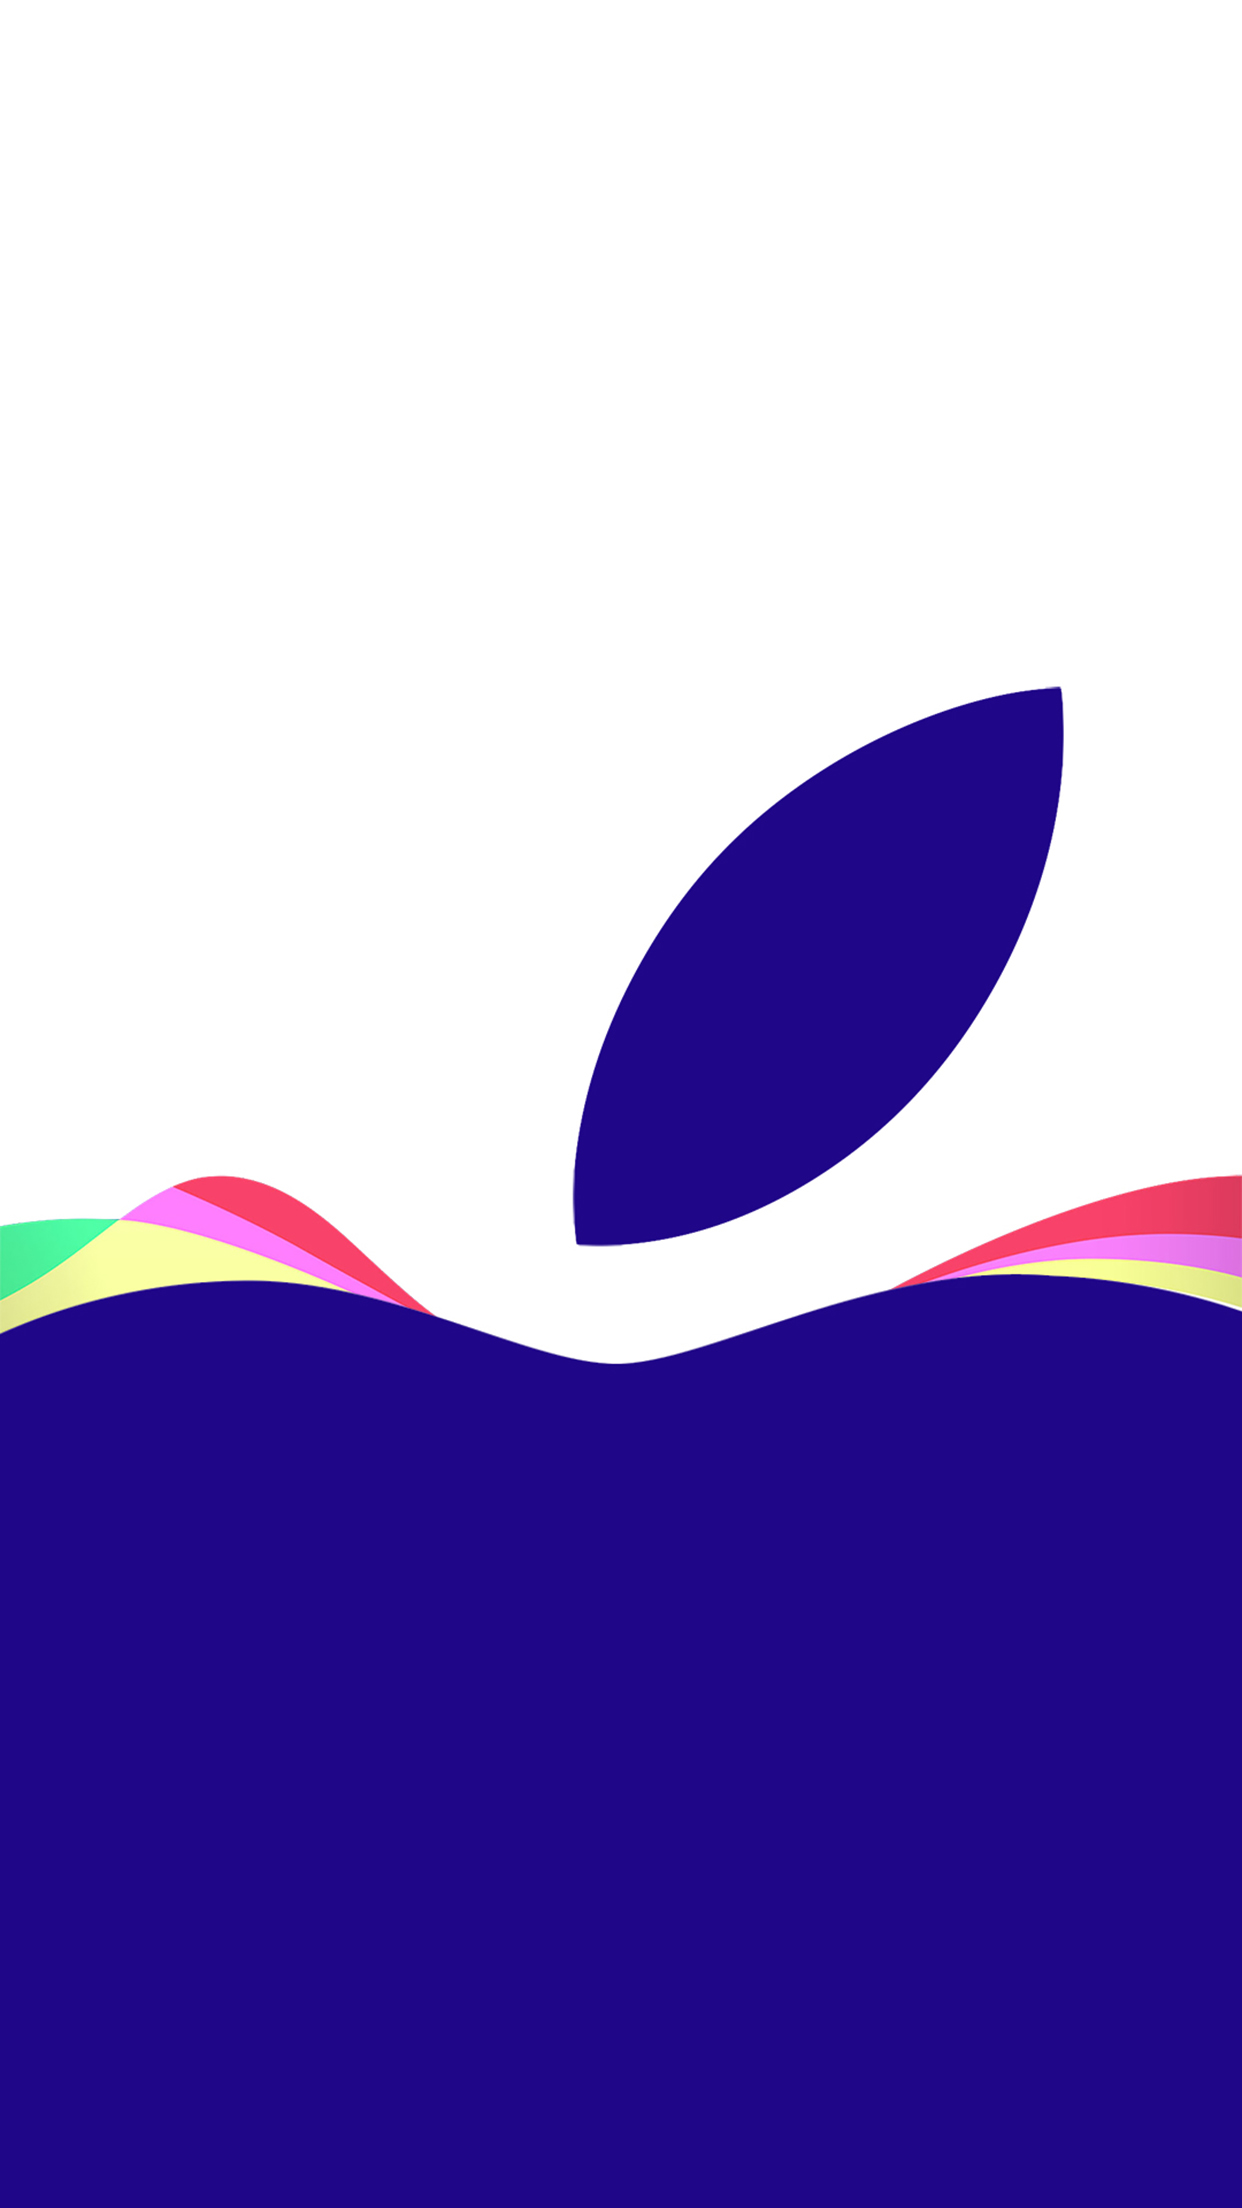 Apple Keynote 2015 2 3Wallpapers iPhone Parallax Apple keynote 2015 (2)